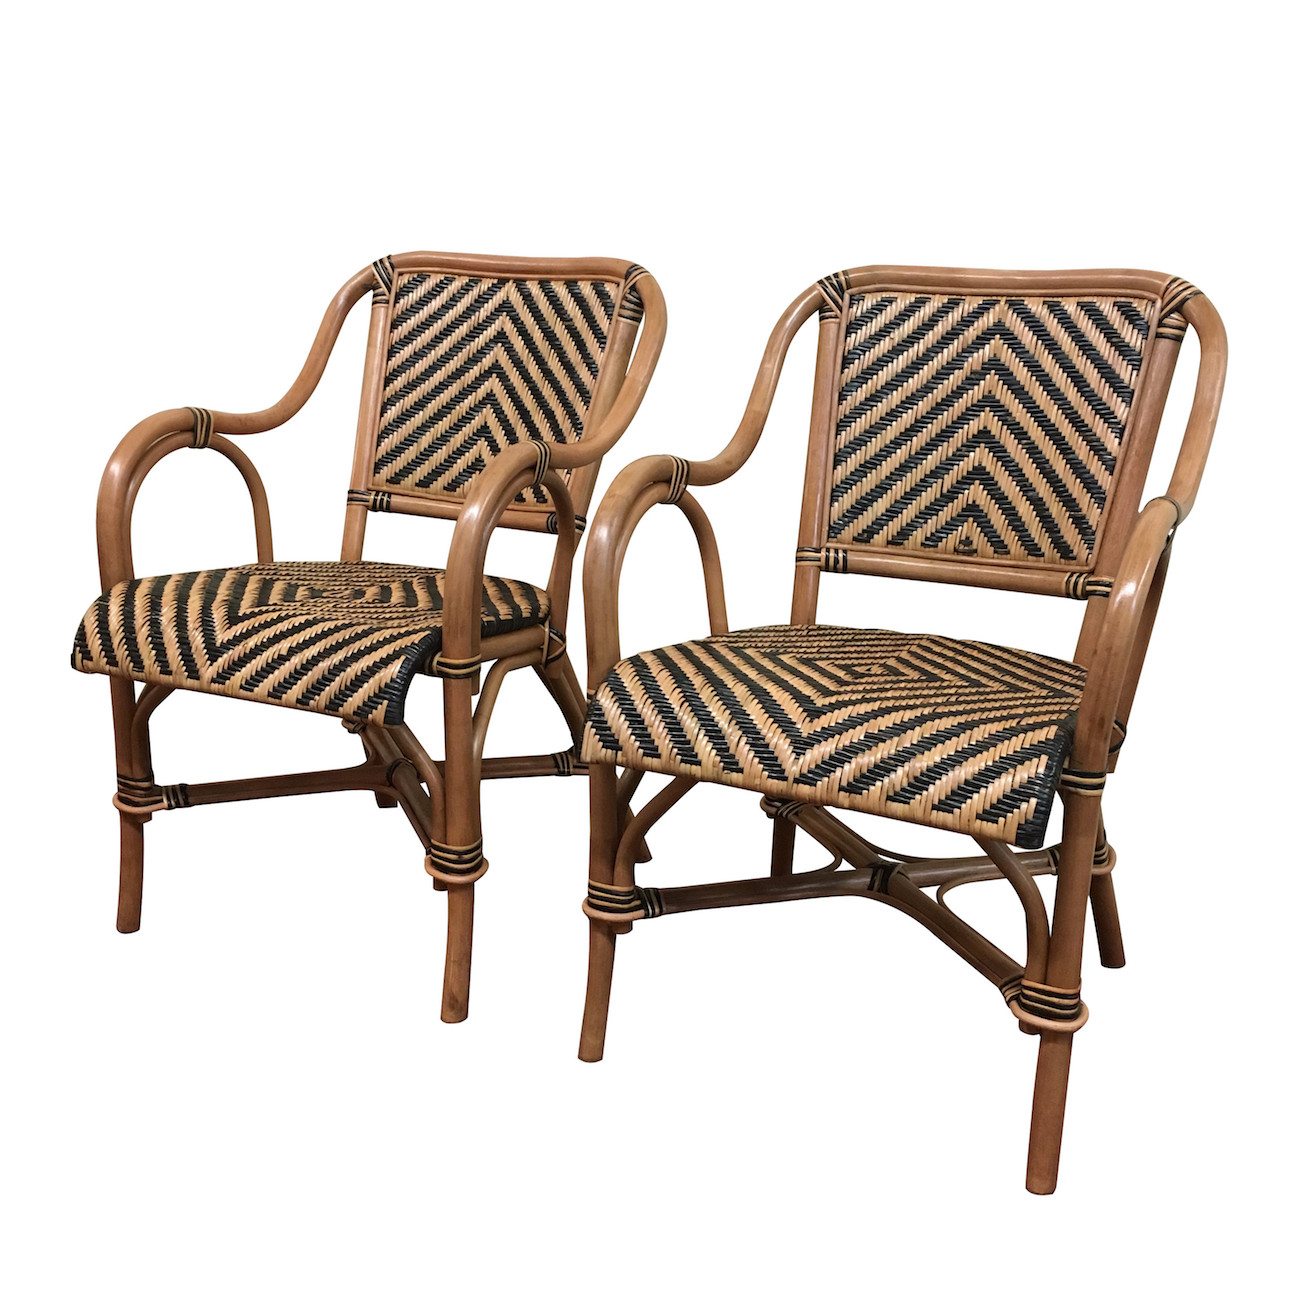 A Pair Of Safari Rattan Dining Arm Chairs